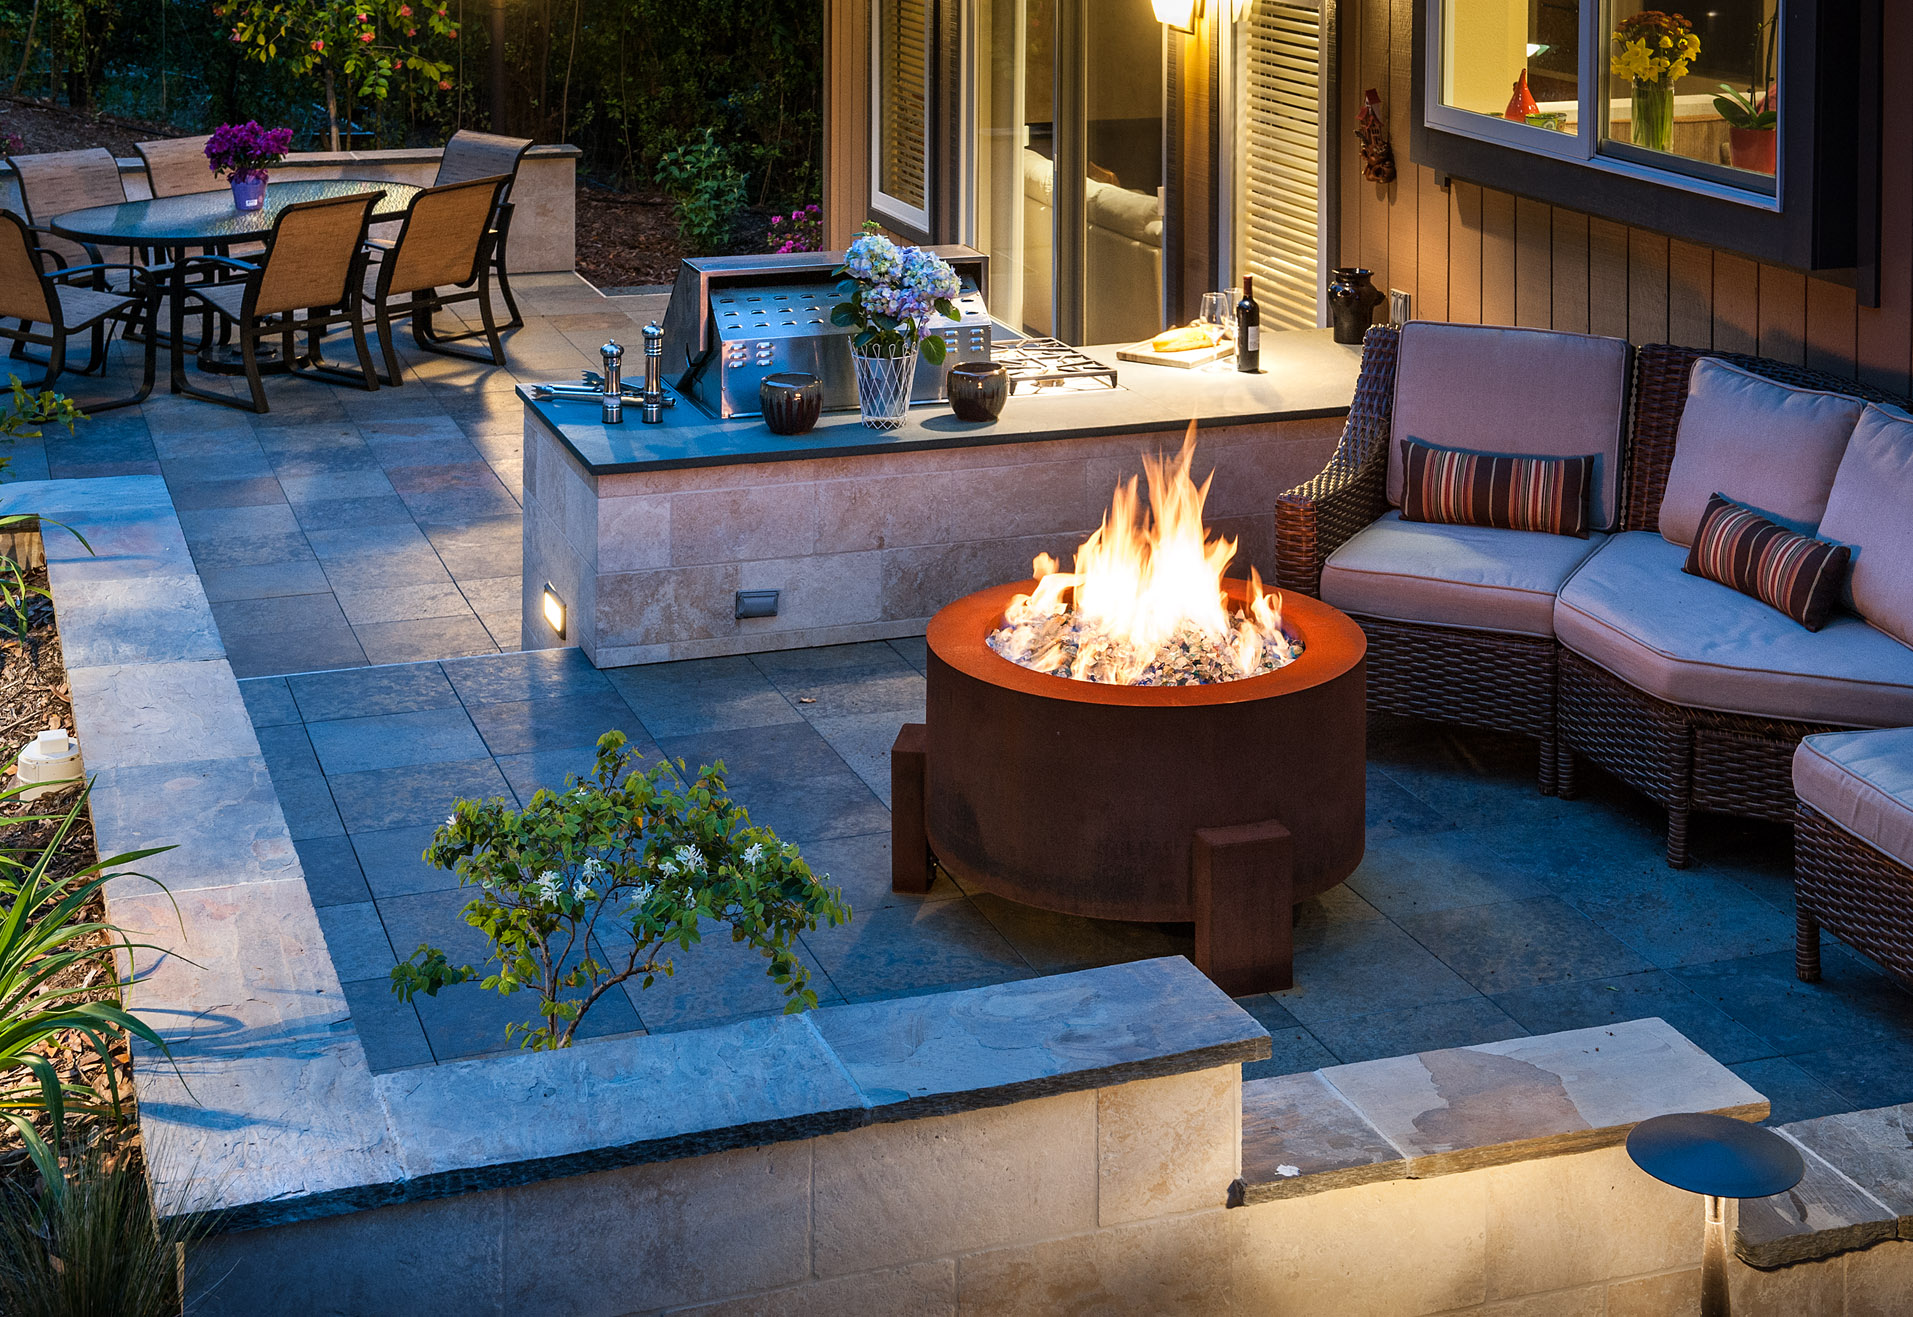 Stay warm around the fire pit.